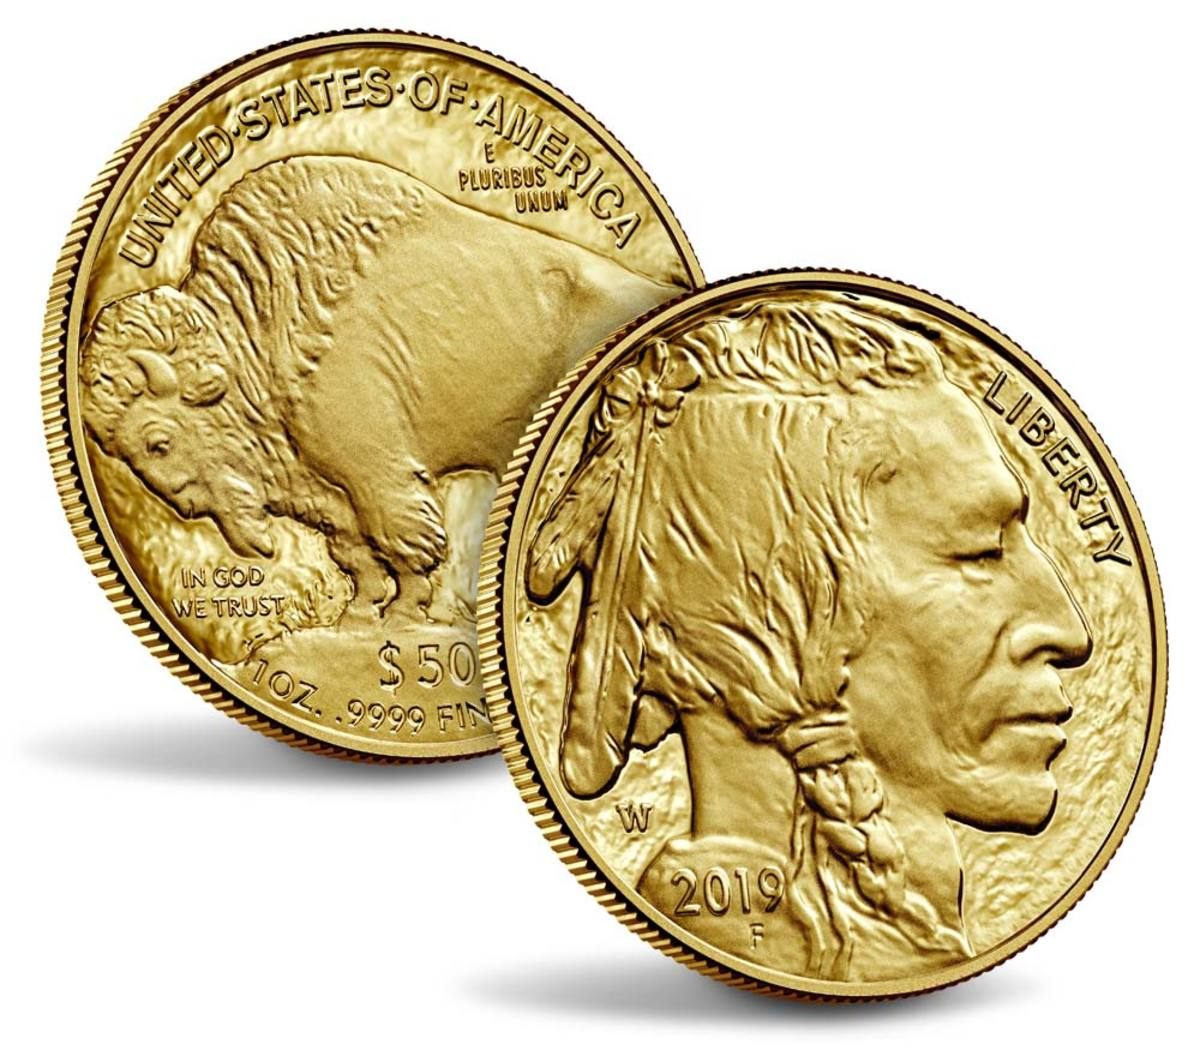 Shown is the American Buffalo 2019 Once ounce Gold Proof Coin. (Image courtesy of U.S. Mint.)